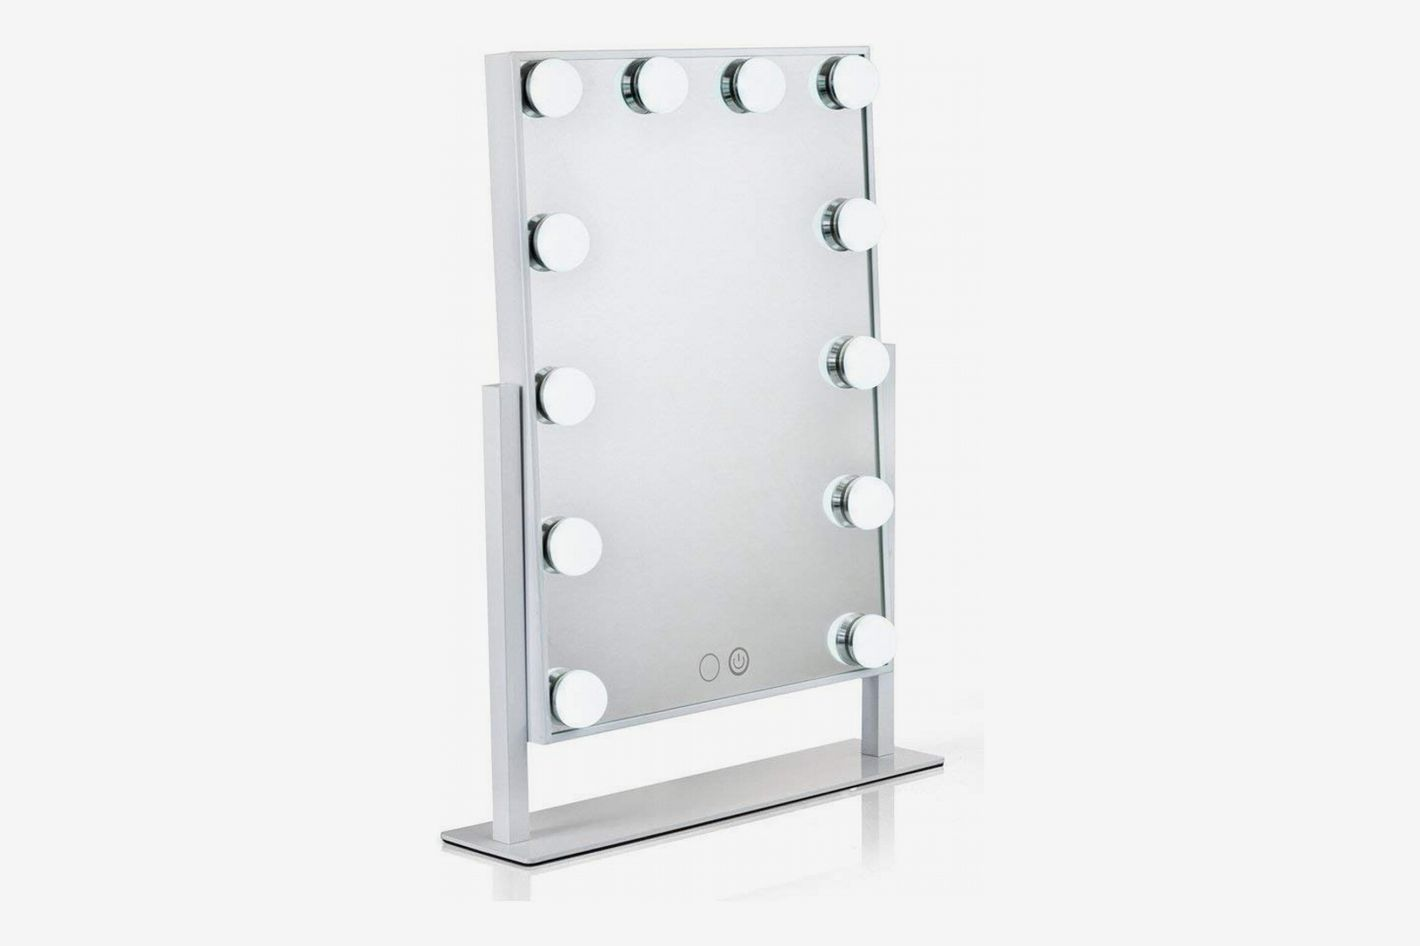 Waneway Lighted Vanity Mirror with 12 x 3W Dimmable LED Bulbs and Touch Control Design